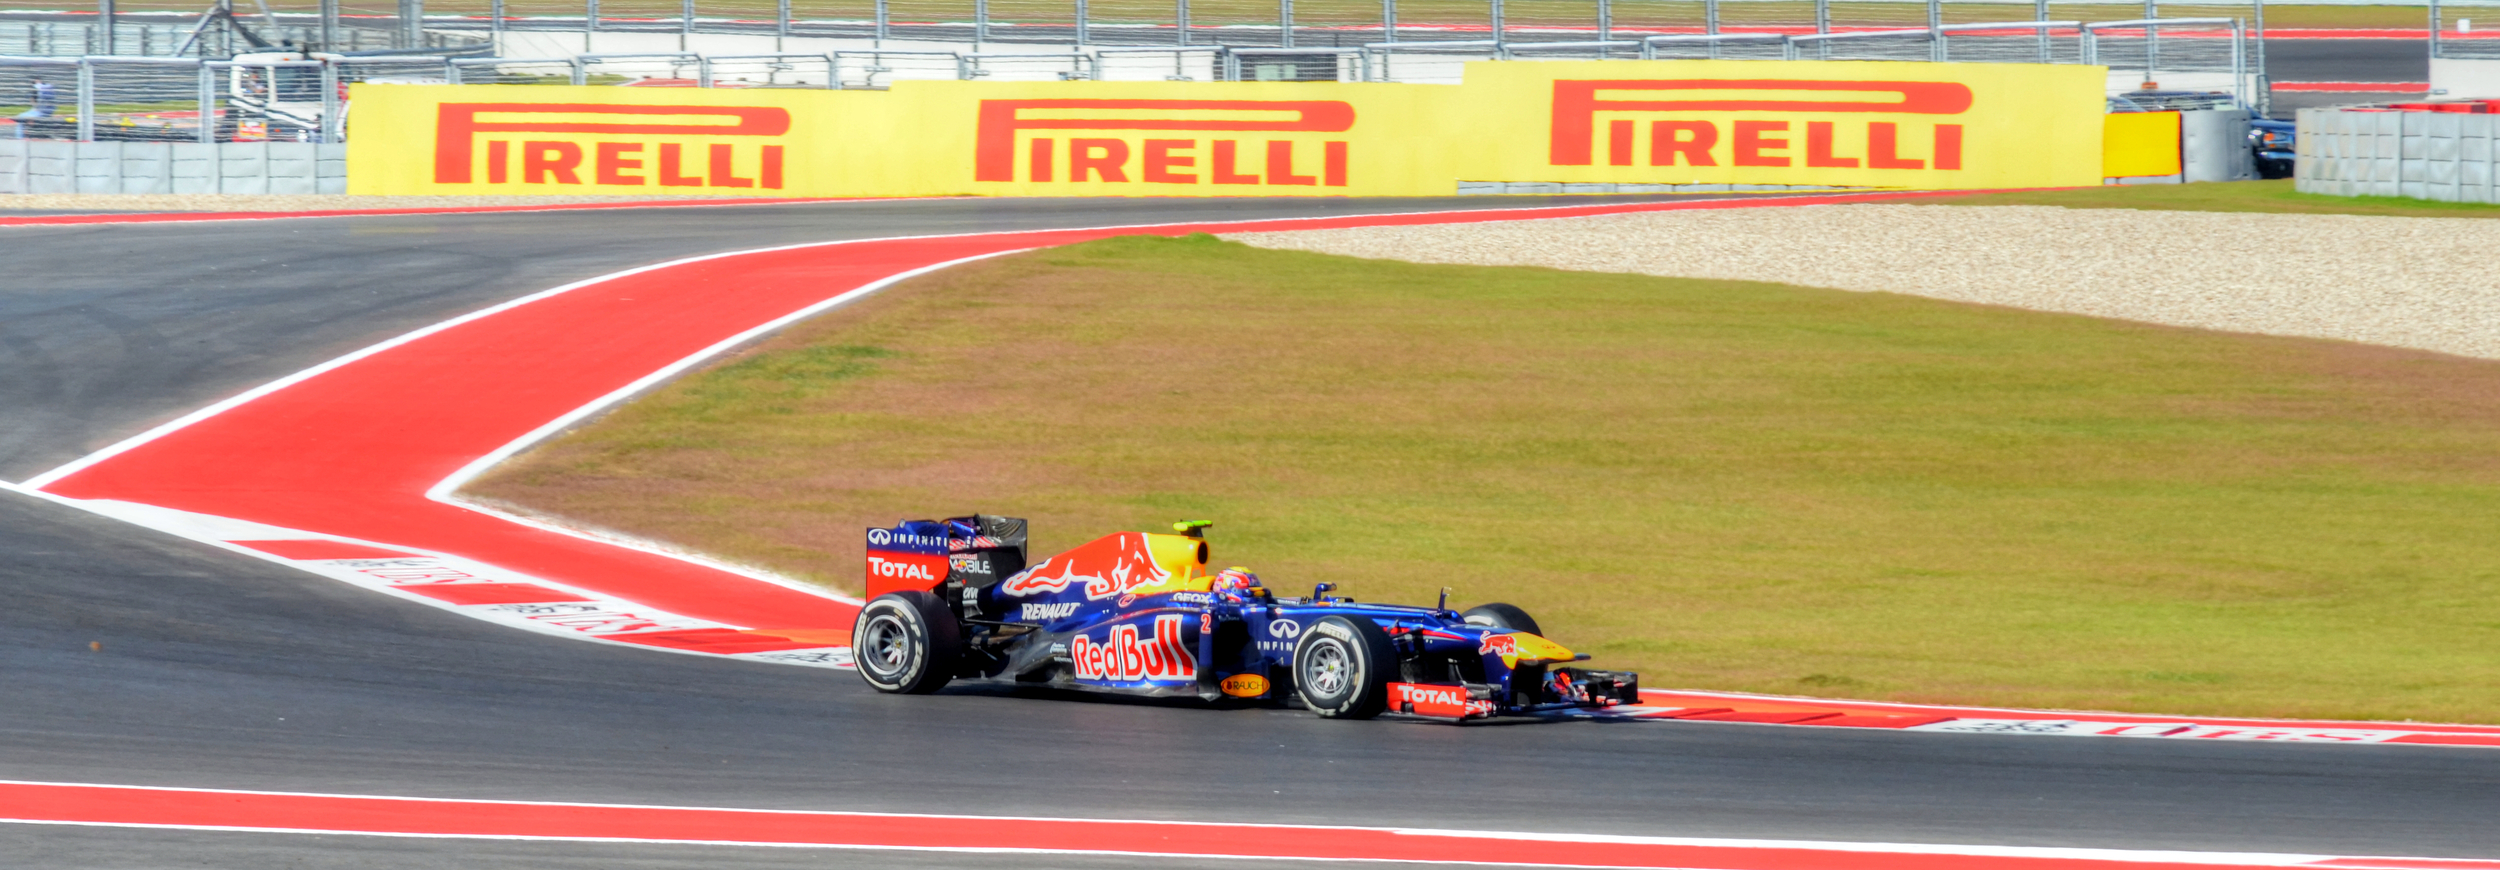 Formula One at Circuit of the Americas, Austin, Texas, USA